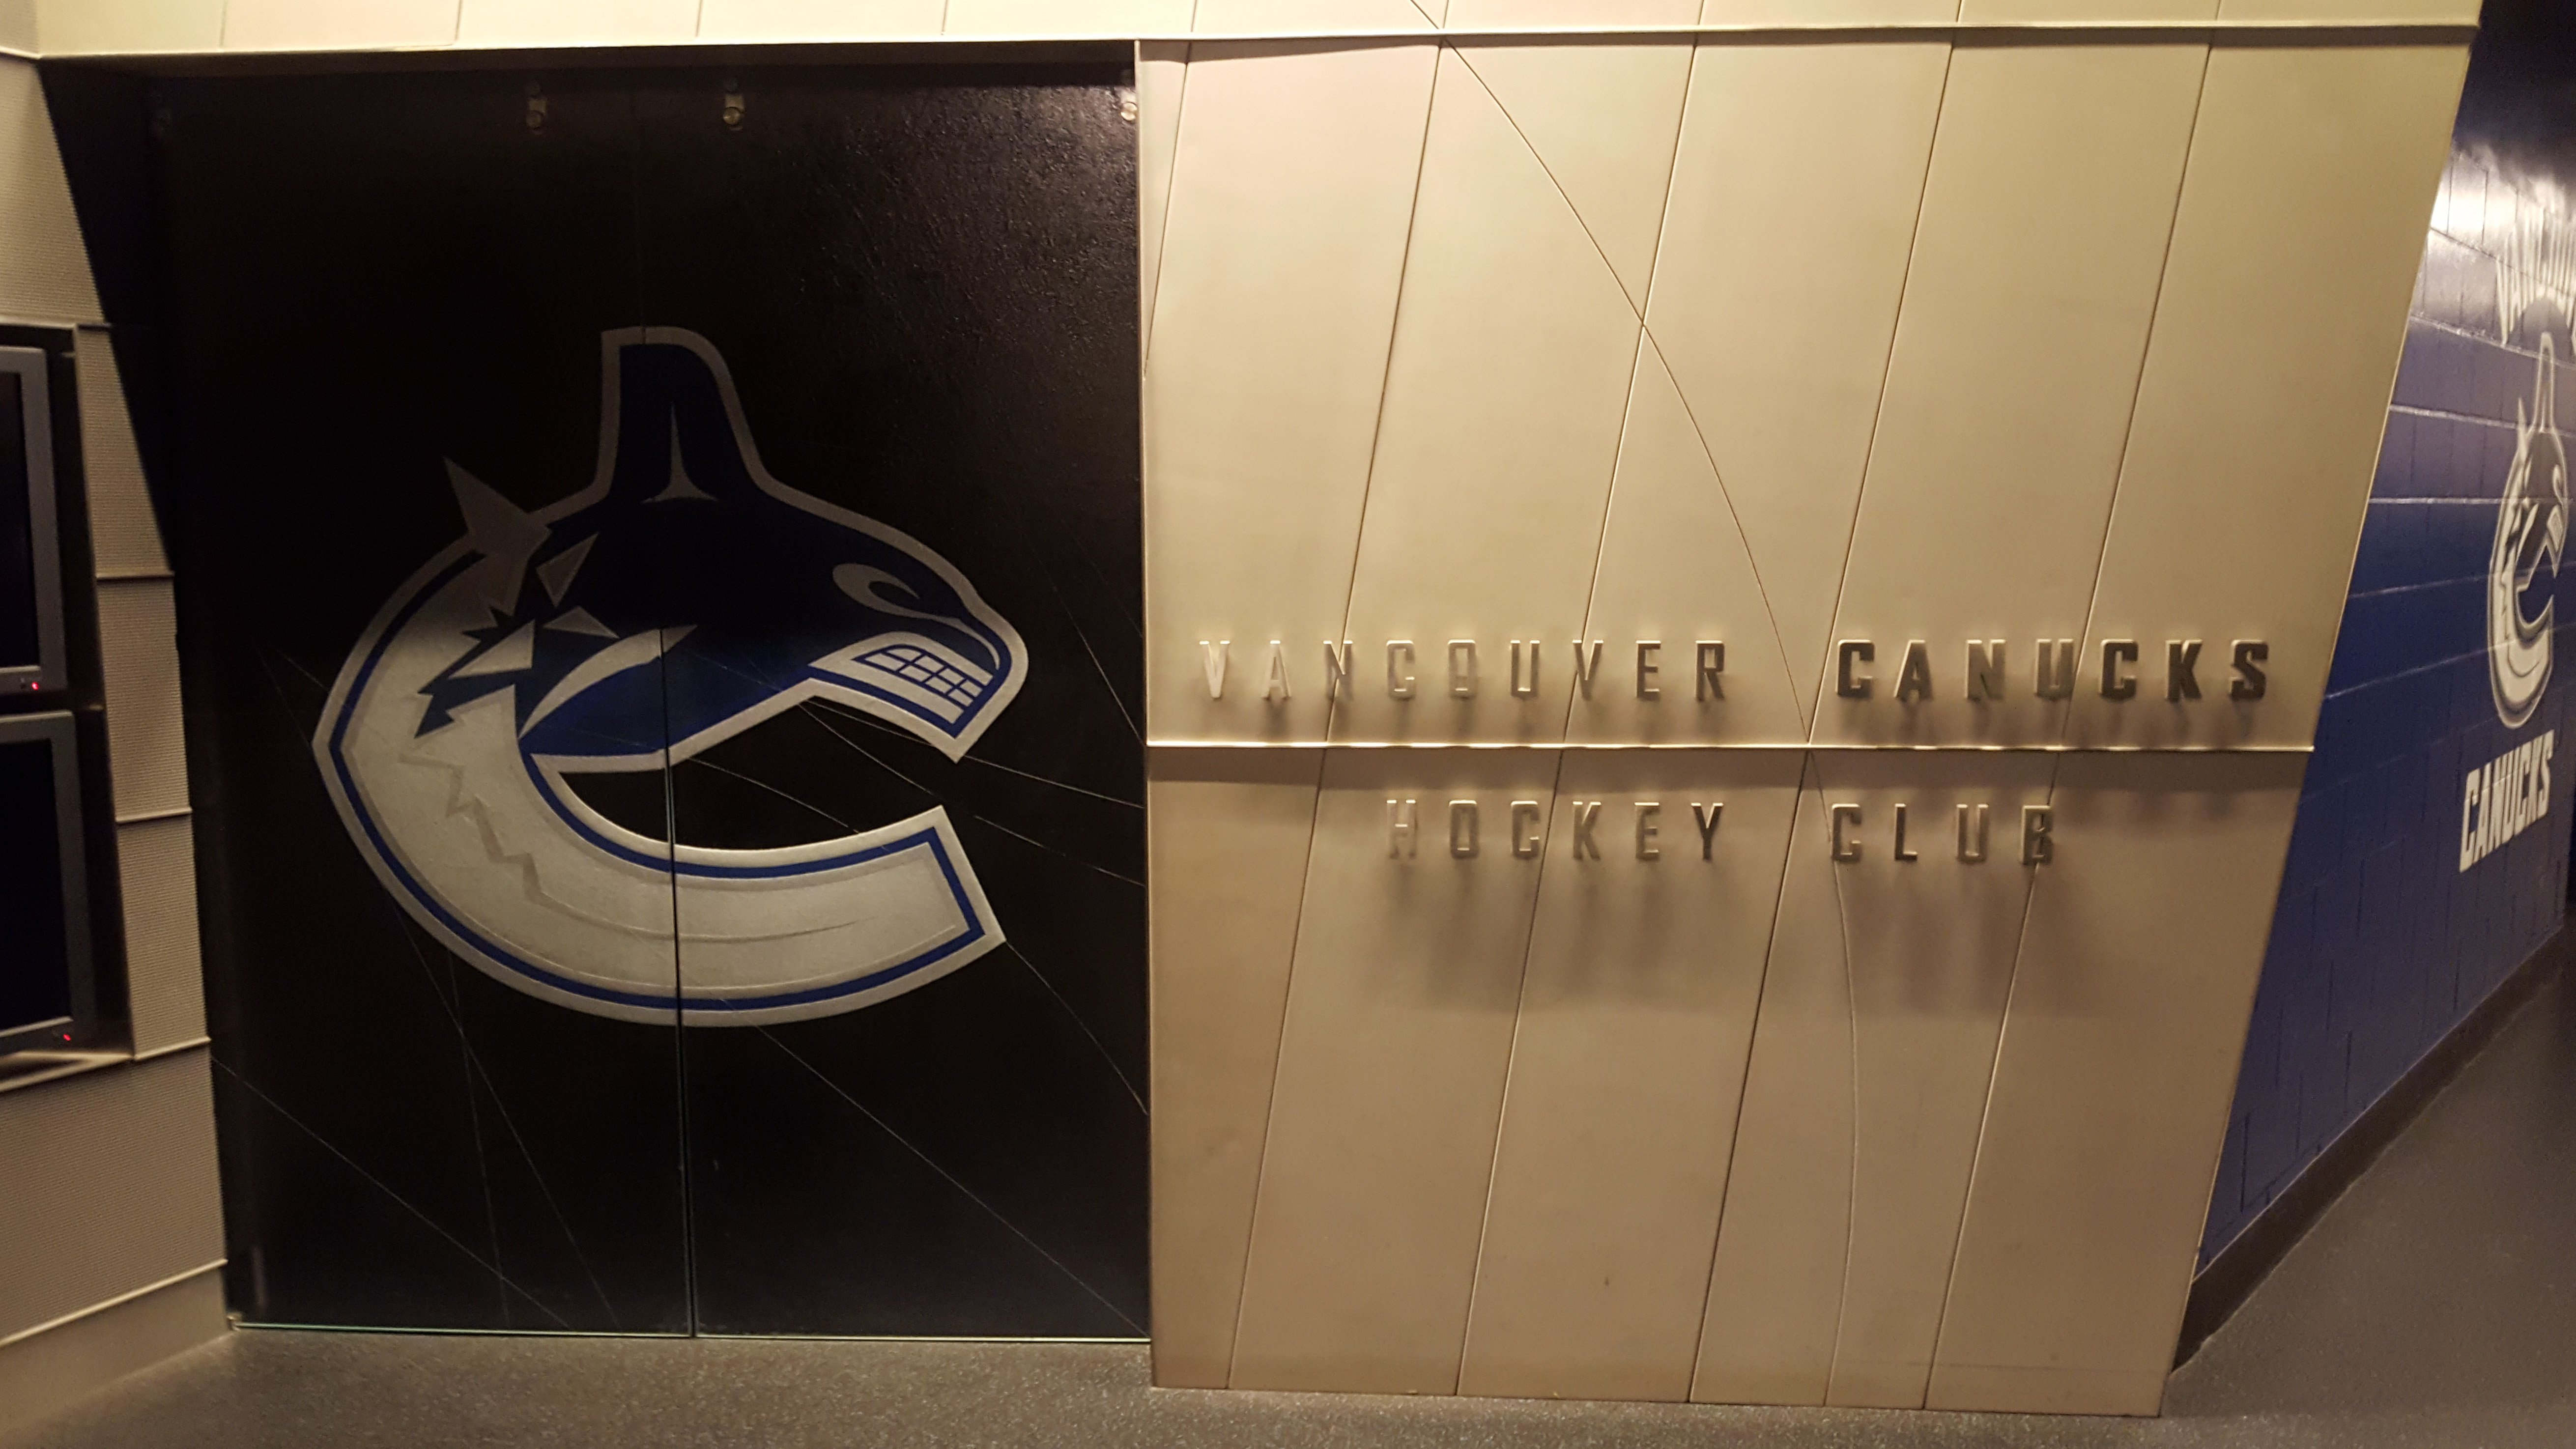 Canucks